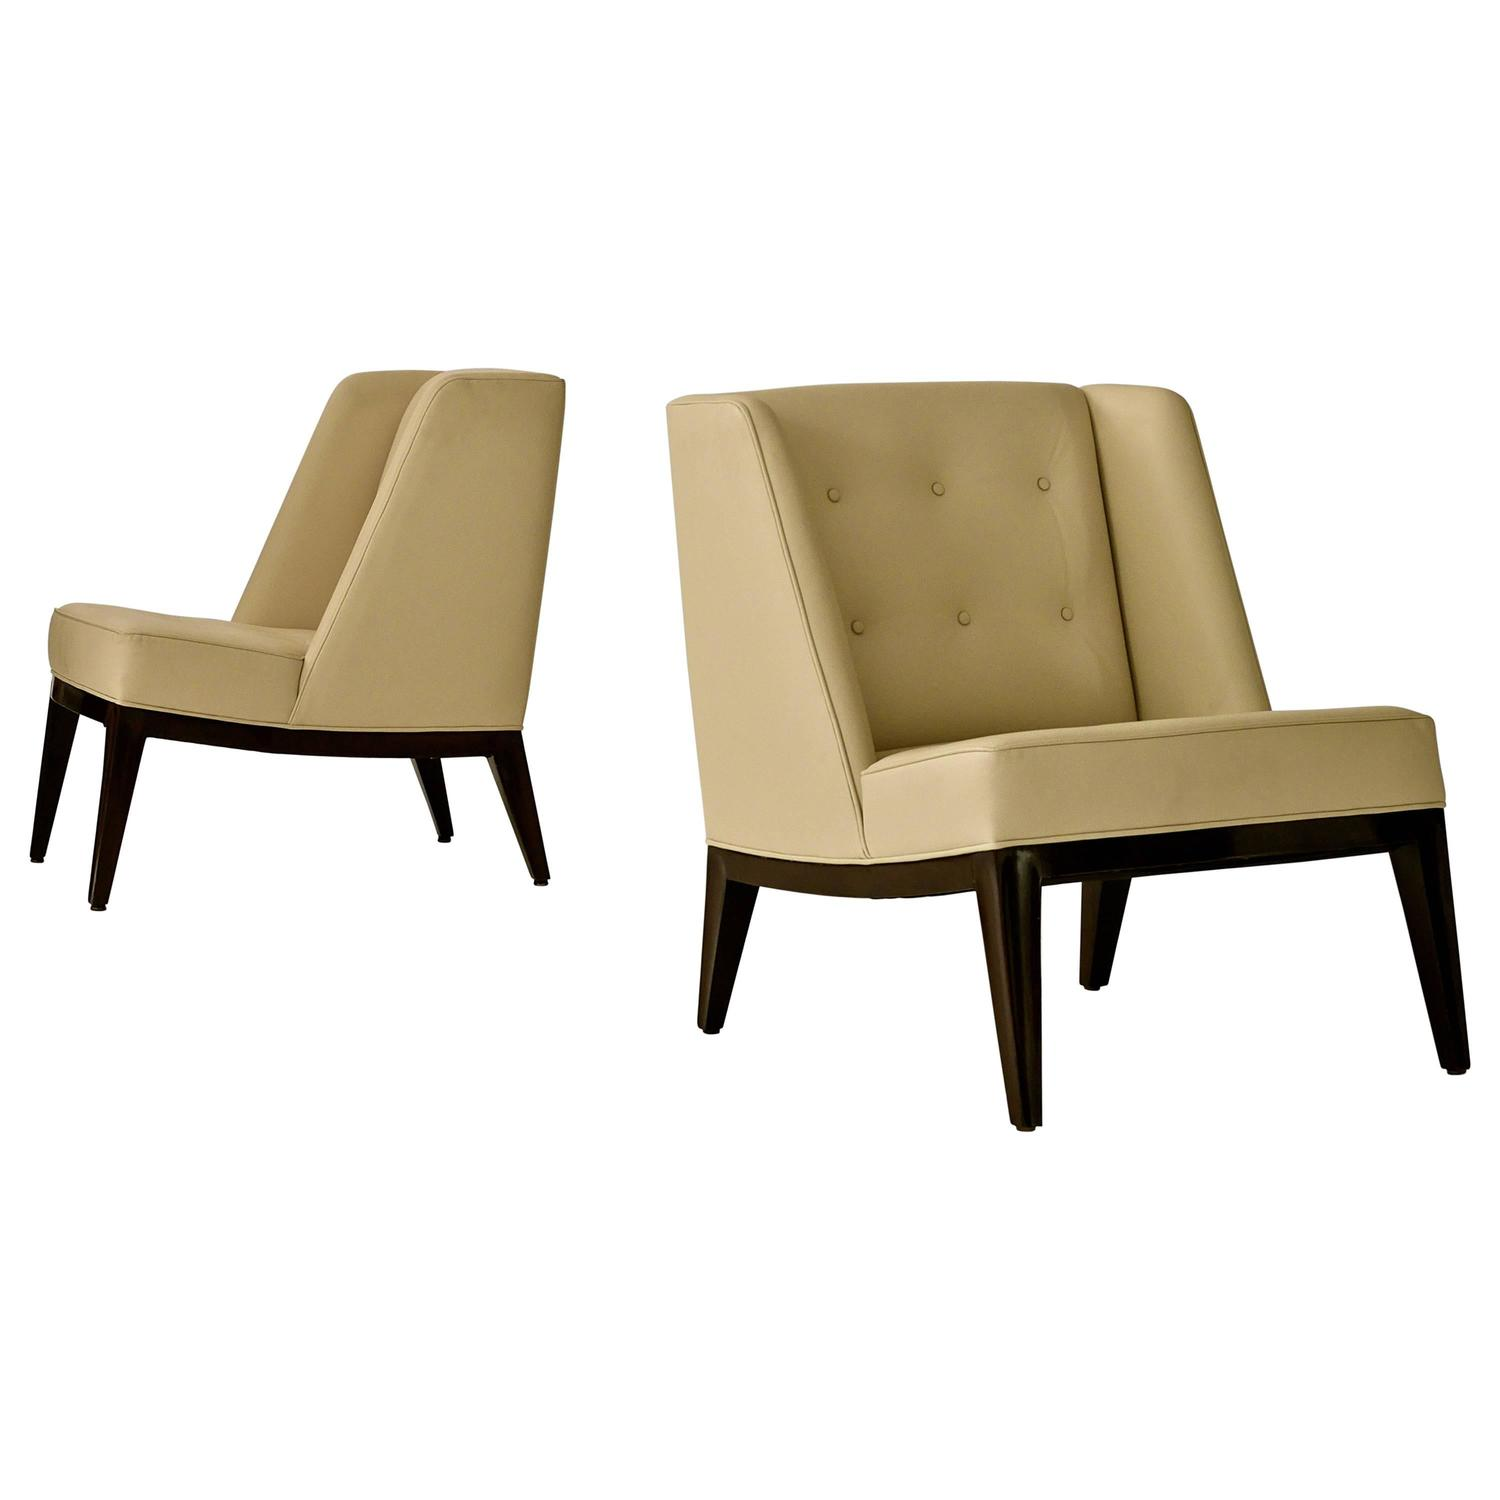 """American Mid Century Modern Atomic Age Small Patio Round: Rare Edward Wormley """"Janus"""" Lounge Chairs For Sale At 1stdibs"""